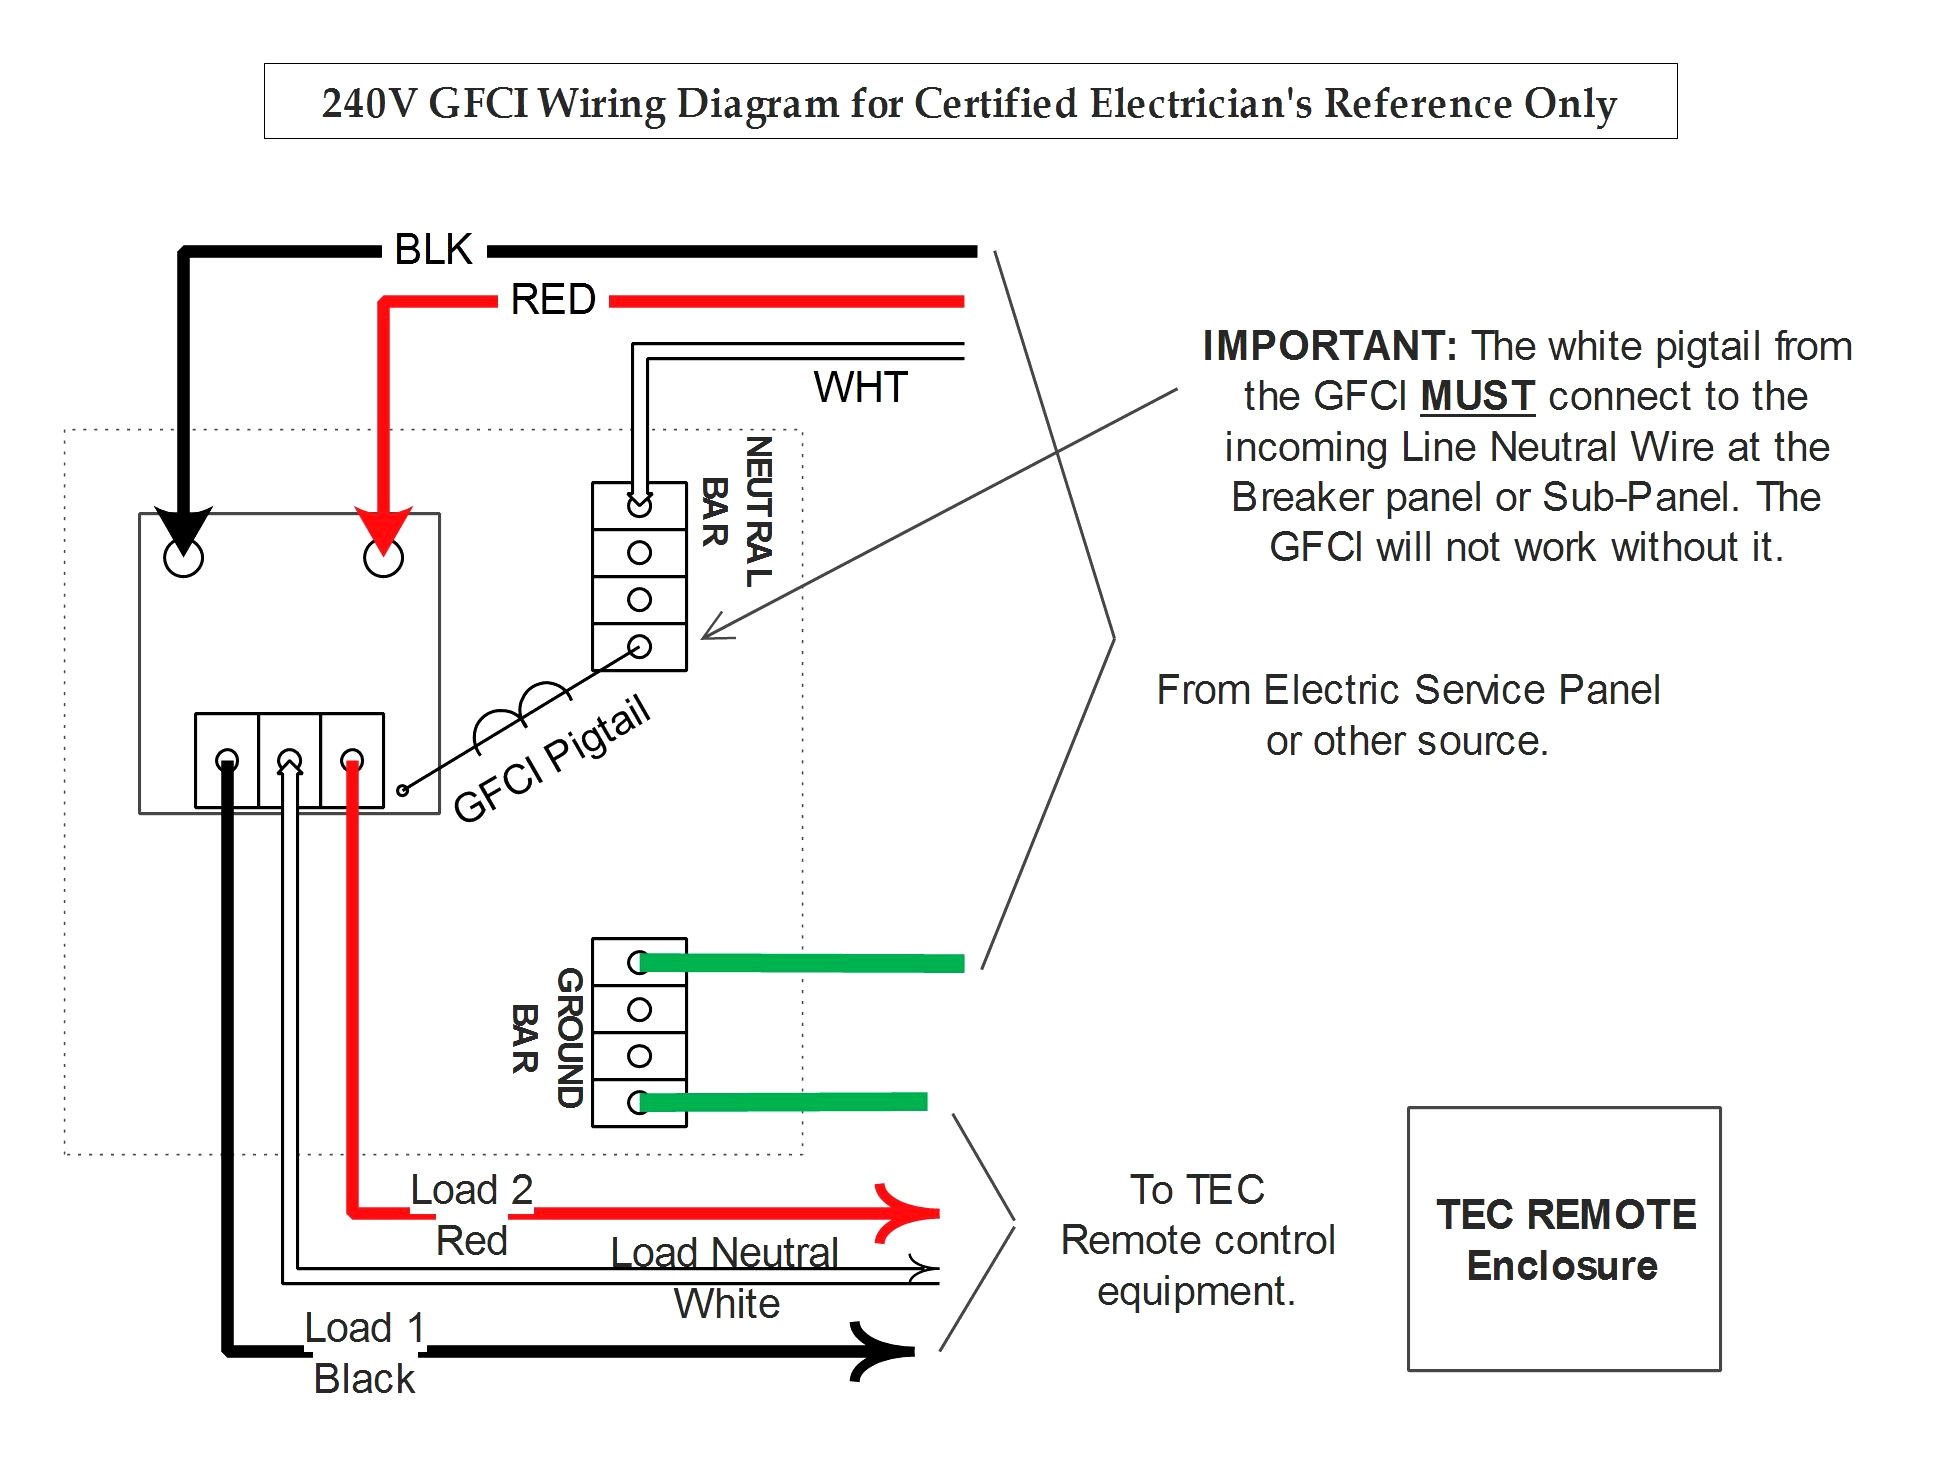 wiring bremas diagram switch cs0122746 diagram base website switch ...  diagram base website full edition - sinistracomunistainternazionale